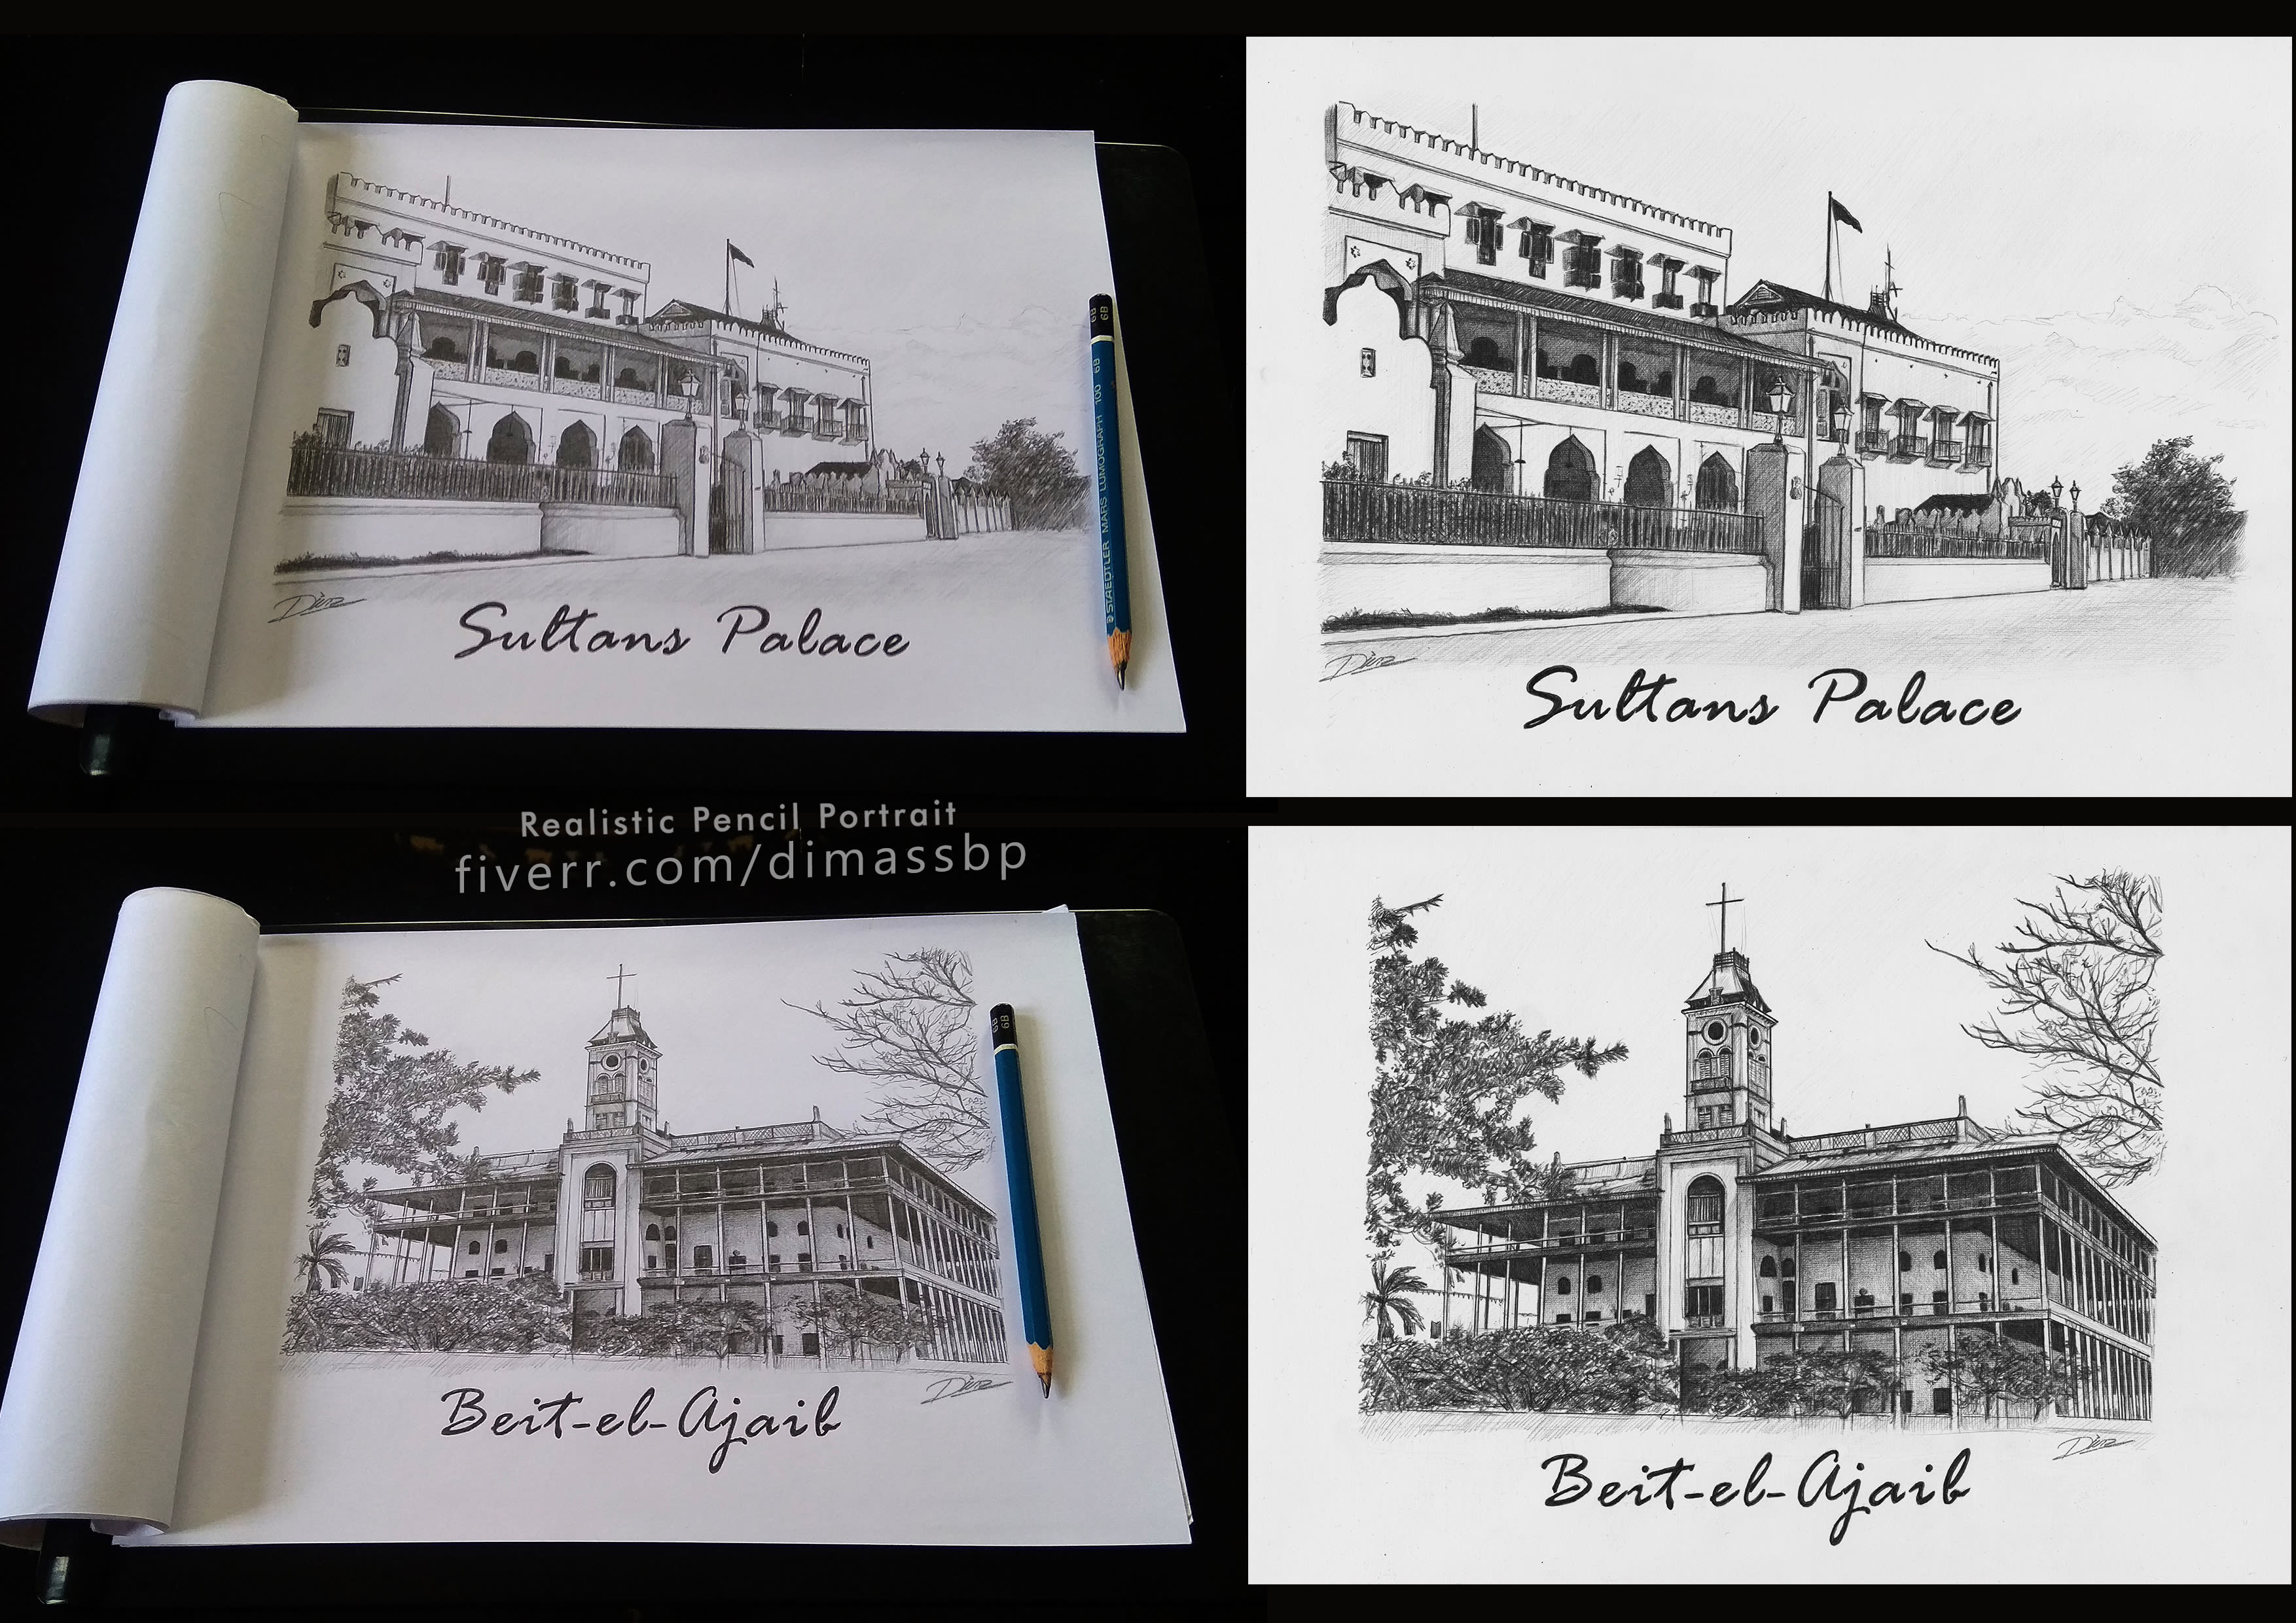 Draw Pencil Sketch Landscape Building Or Scenery With My Style By Dimassbp